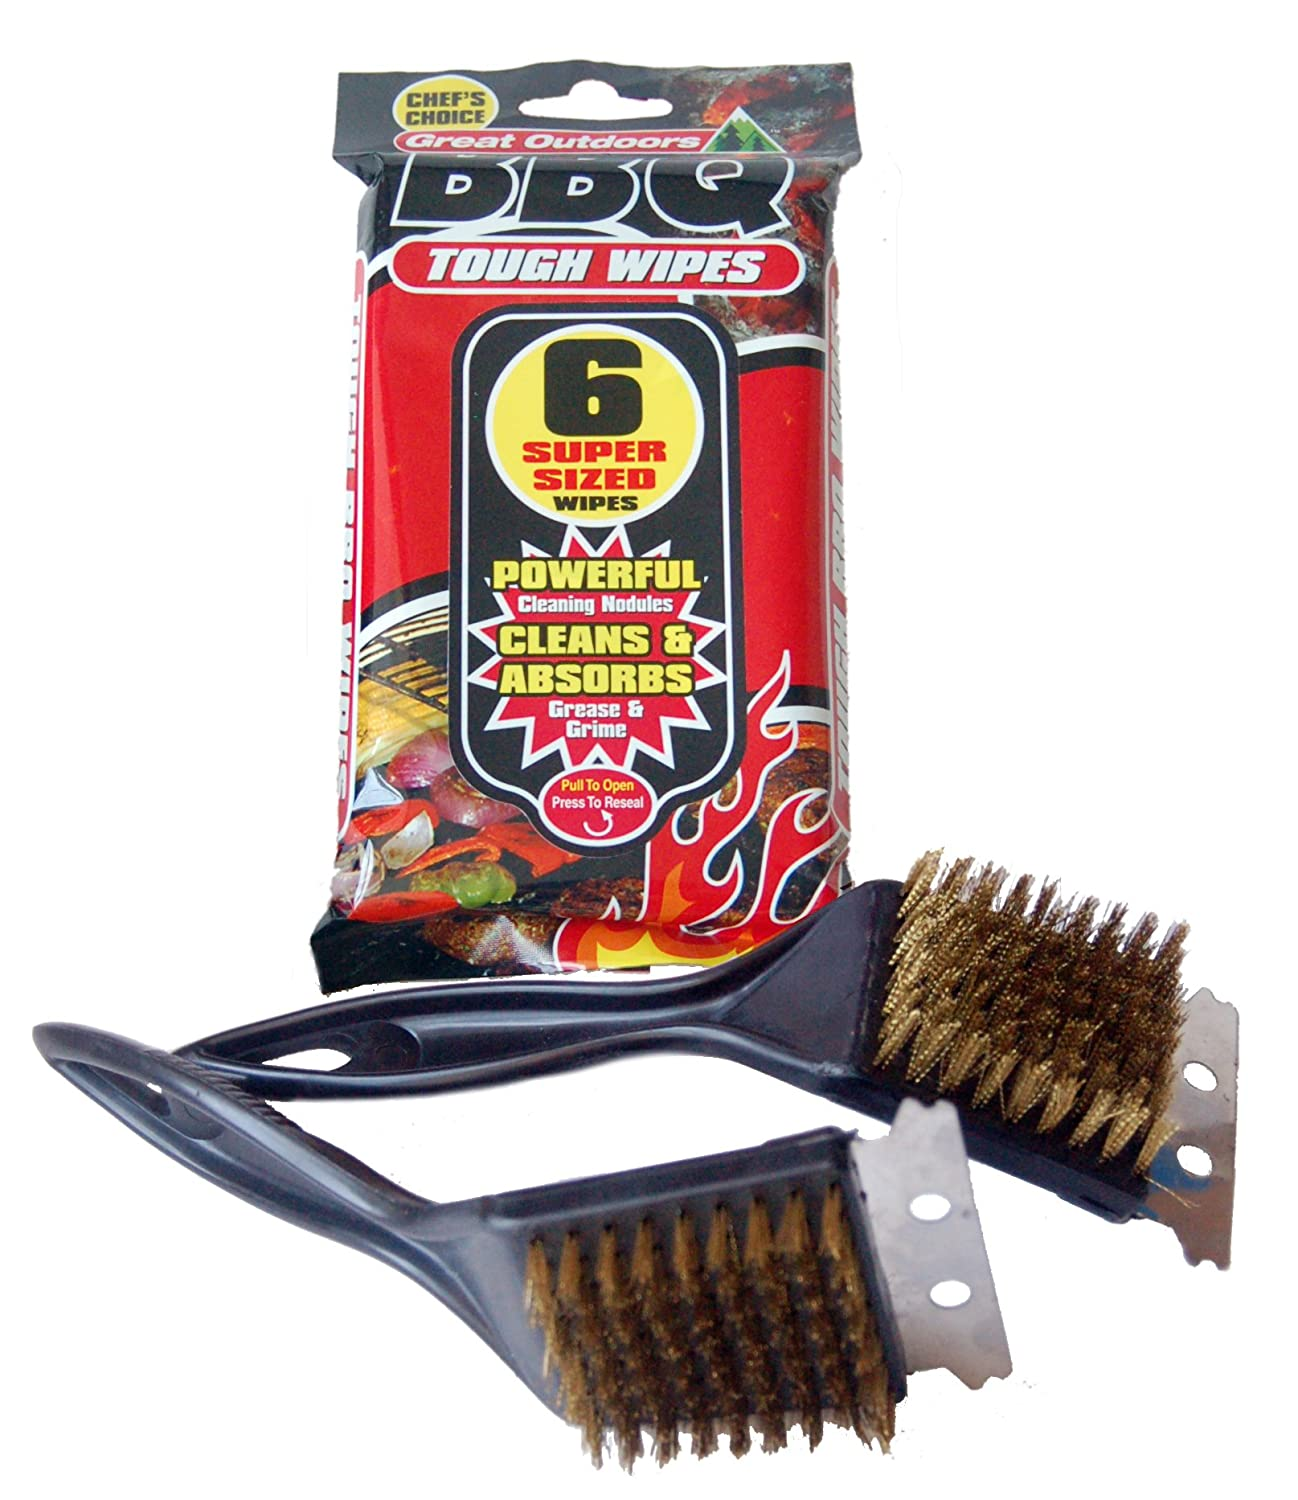 Complete BBQ Cleaning Care Kit, 2 x Barbecue Oven And Grill Metal Wire Cleaning Brush Scraper Tool, And 6 x Extra Tough Heavy Duty Disposable BBQ Absorbent Wipes BBQ King